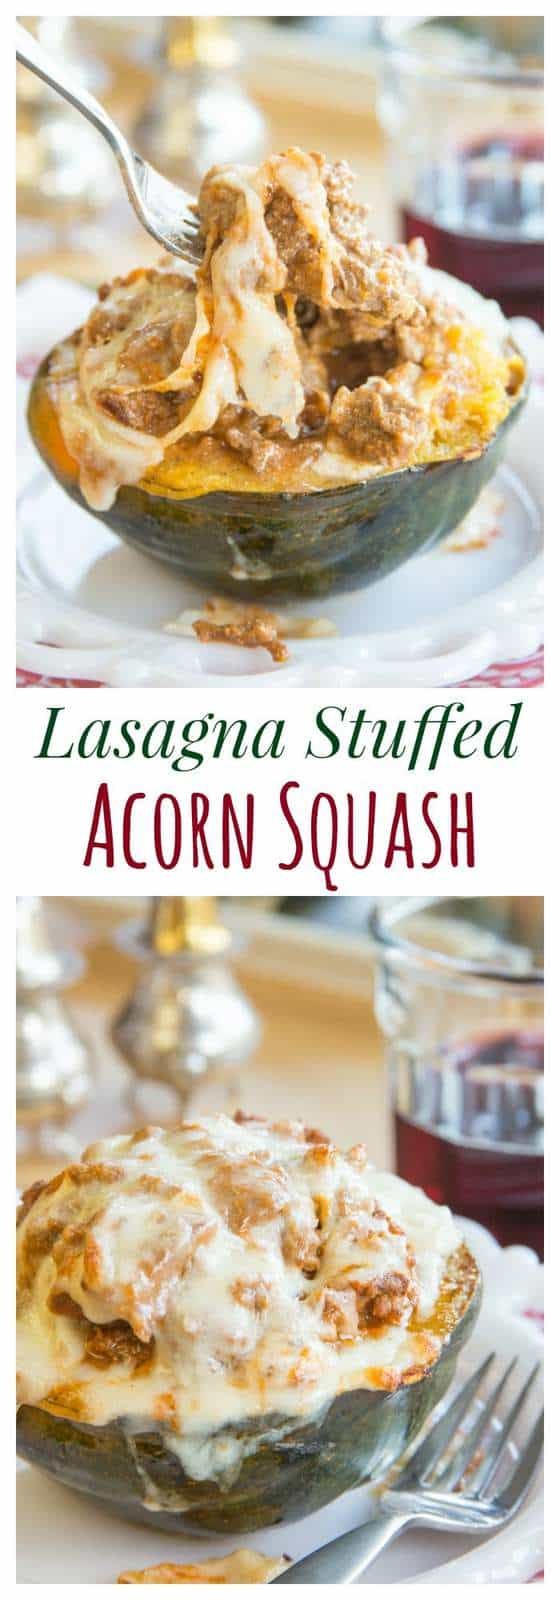 Lasagna Stuffed Acorn Squash - all the cheesy, saucy, meaty goodness of your favorite Italian comfort food recipe in an edible bowl! | cupcakesandkalechips.com | gluten free